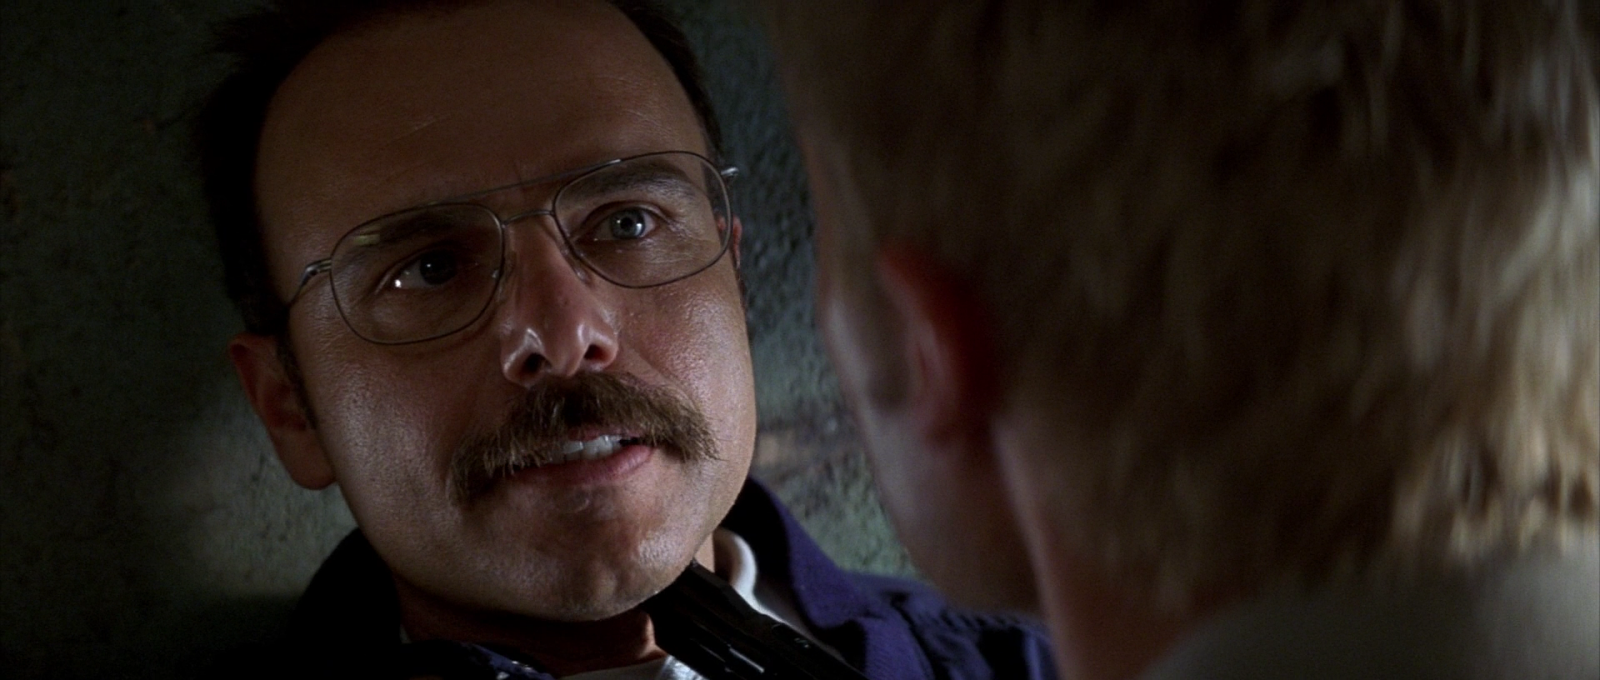 Memento: Joe Pantoliano